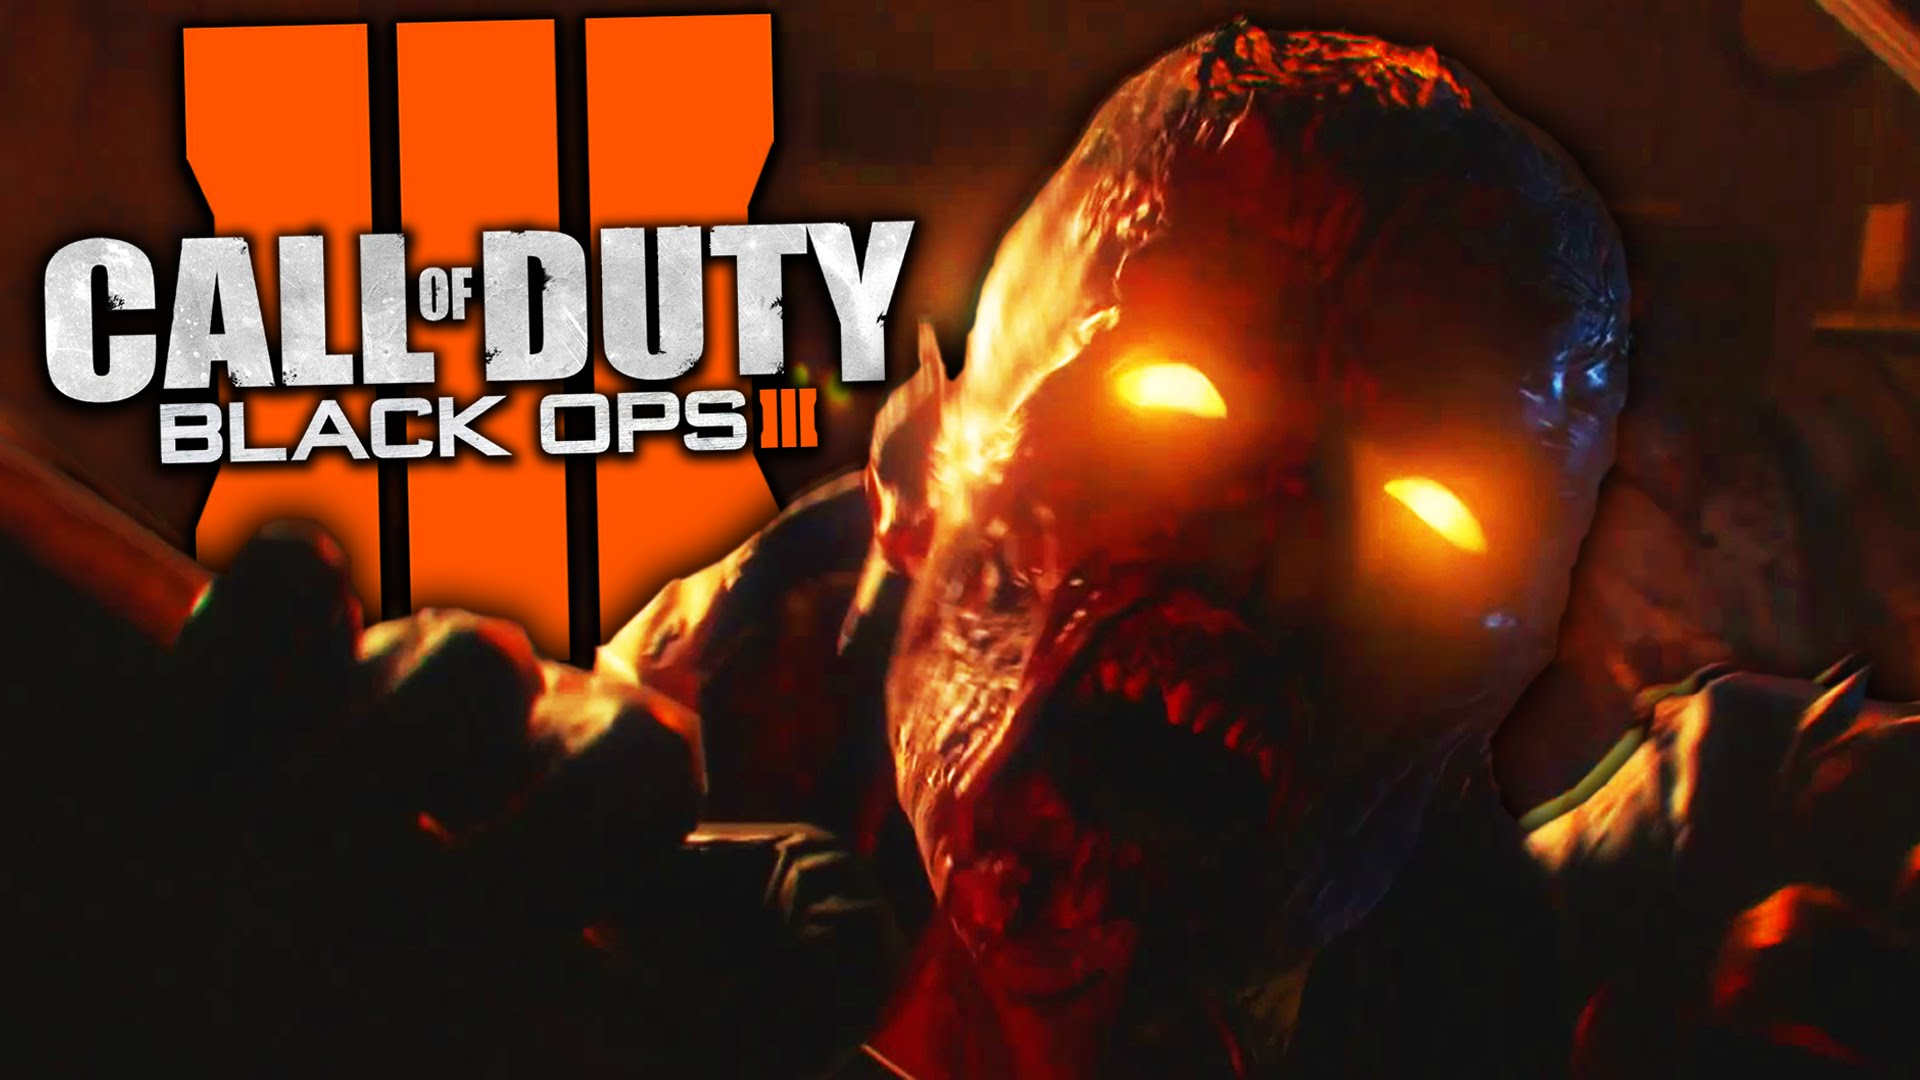 Free Download Call Of Duty Black Ops 3 Wallpaper 9